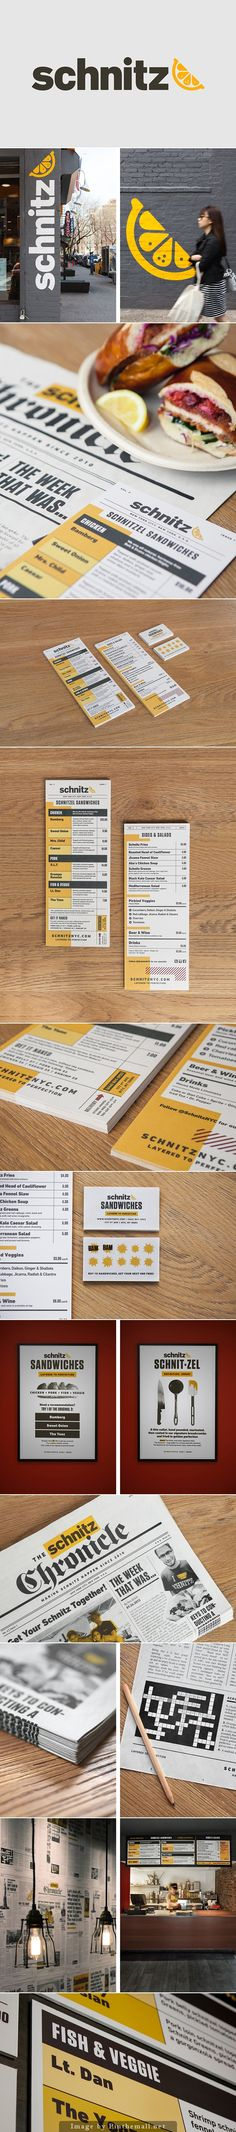 Schnitz Branding, Graphic Design, Print Design By Tag Collective